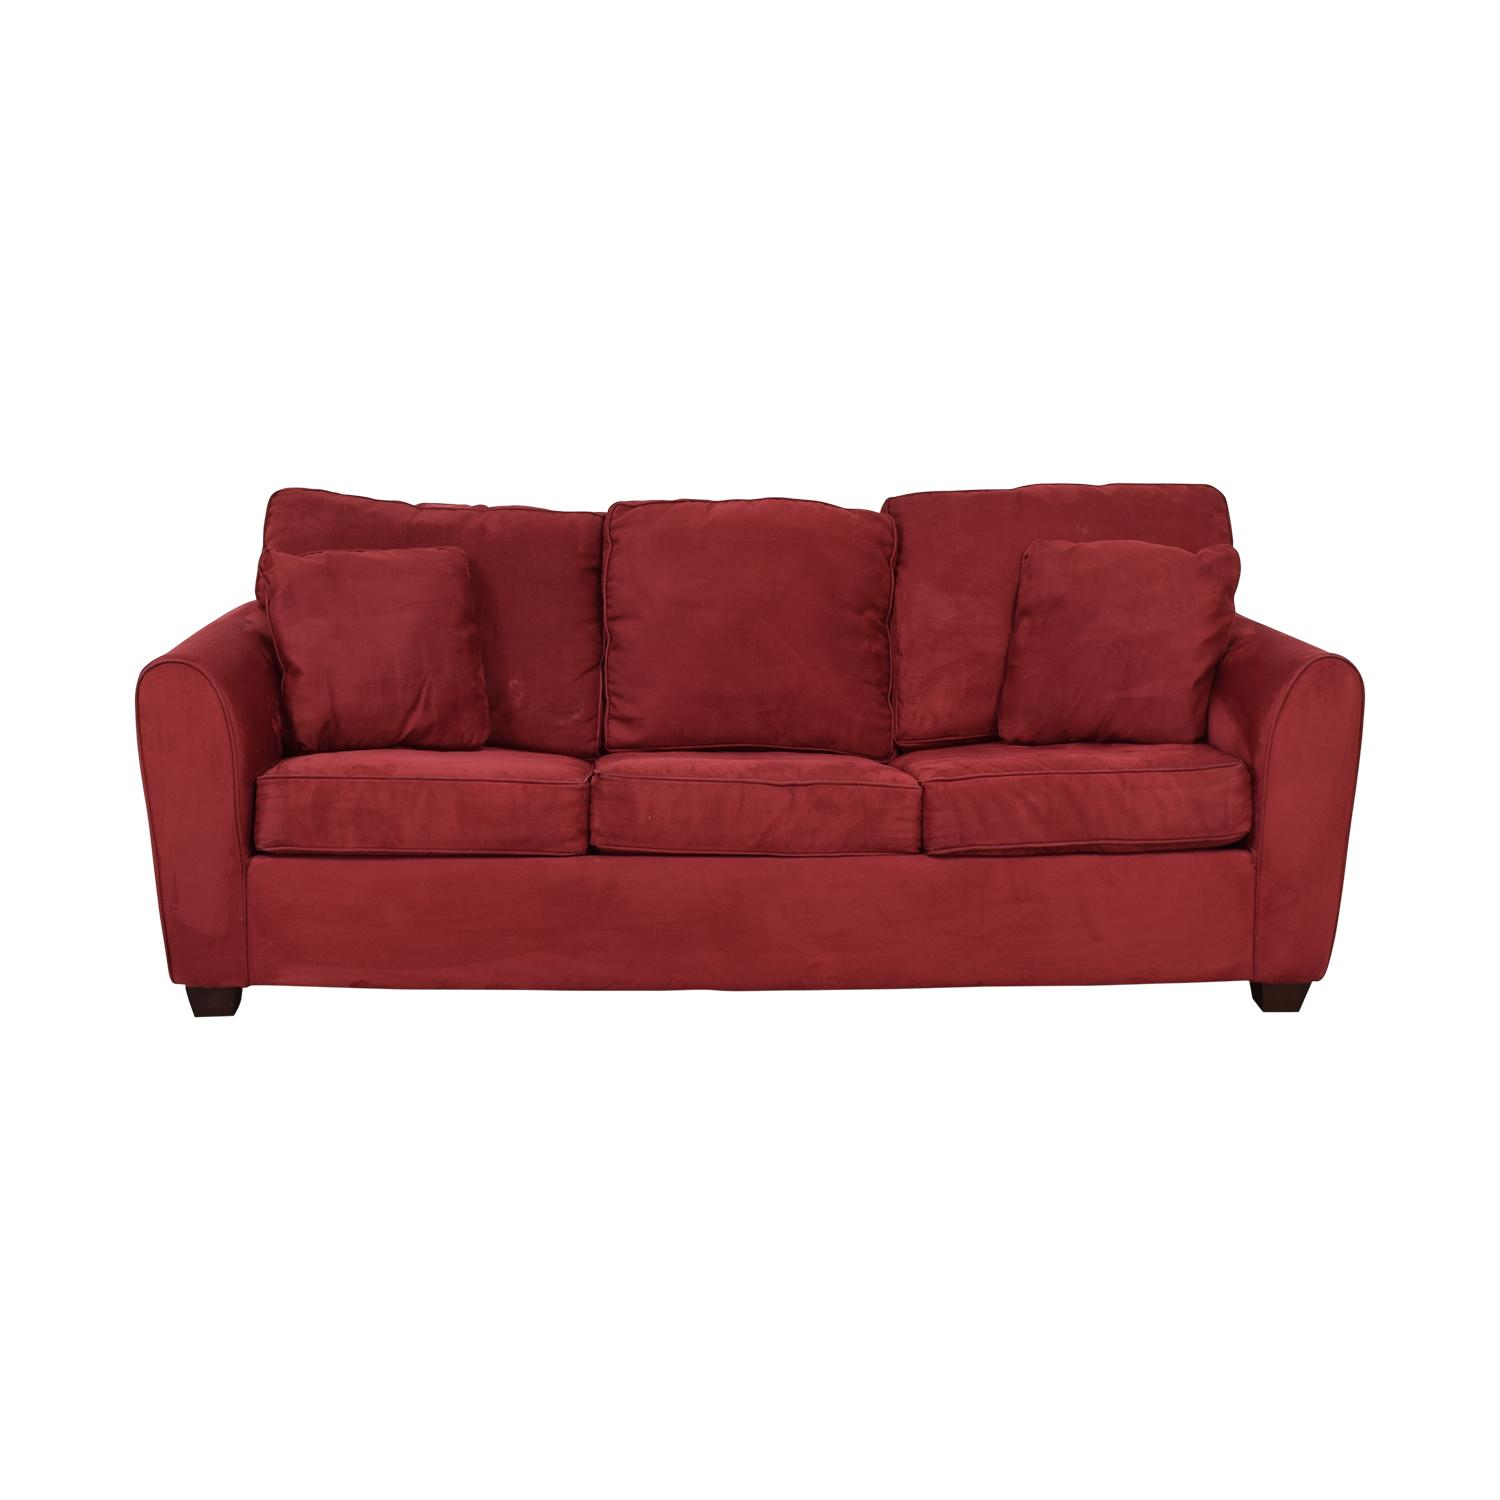 77% OFF - Macy\'s Macy\'s Red Sleeper Sofa / Sofas